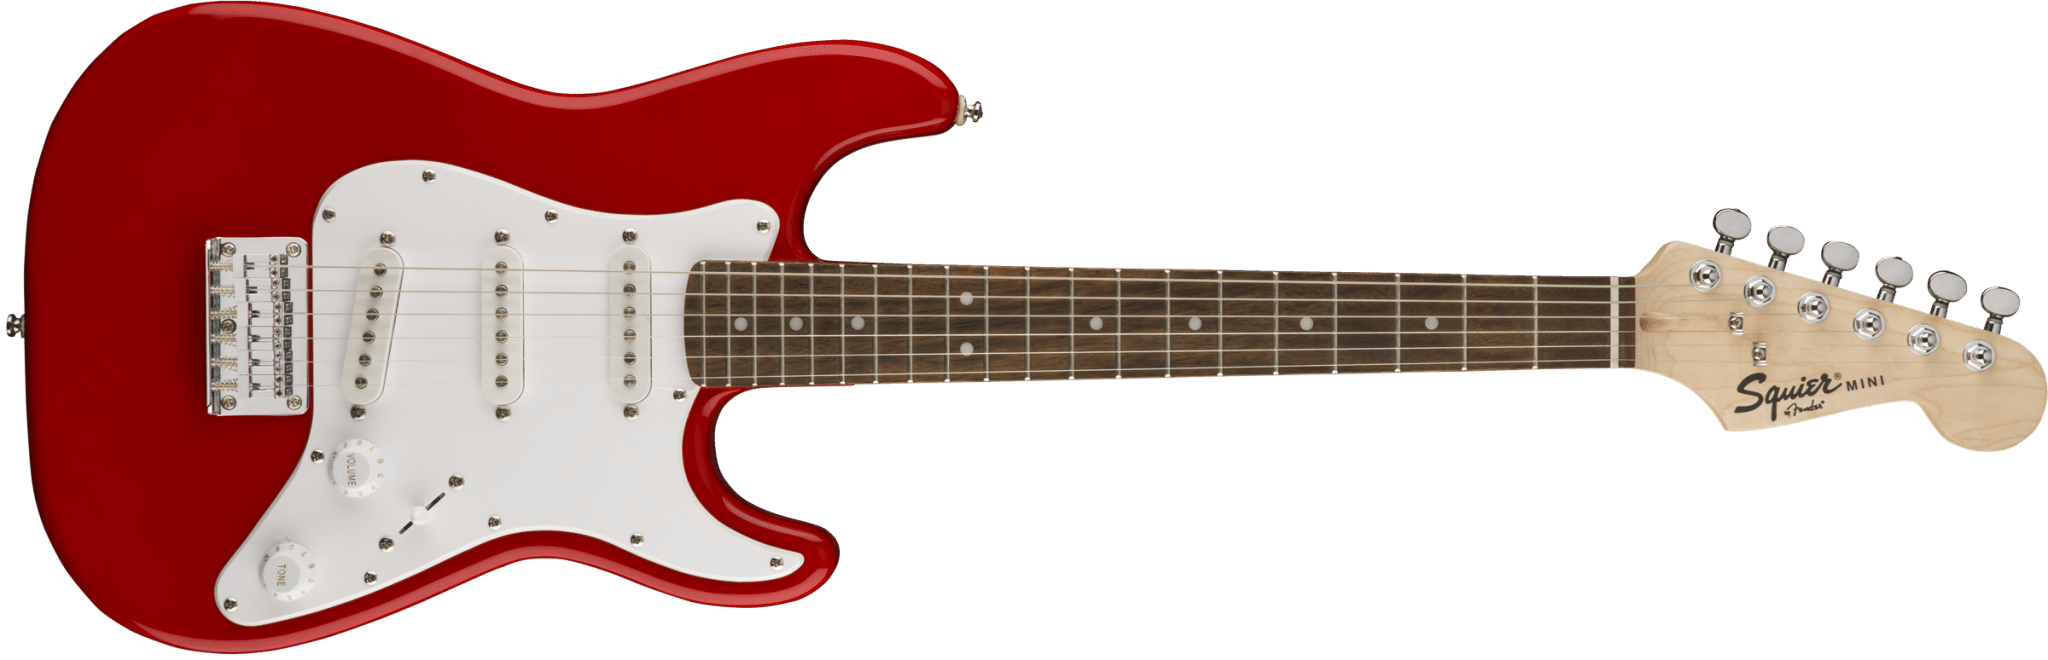 squier mini strat torino red electric guitar eastgate music. Black Bedroom Furniture Sets. Home Design Ideas